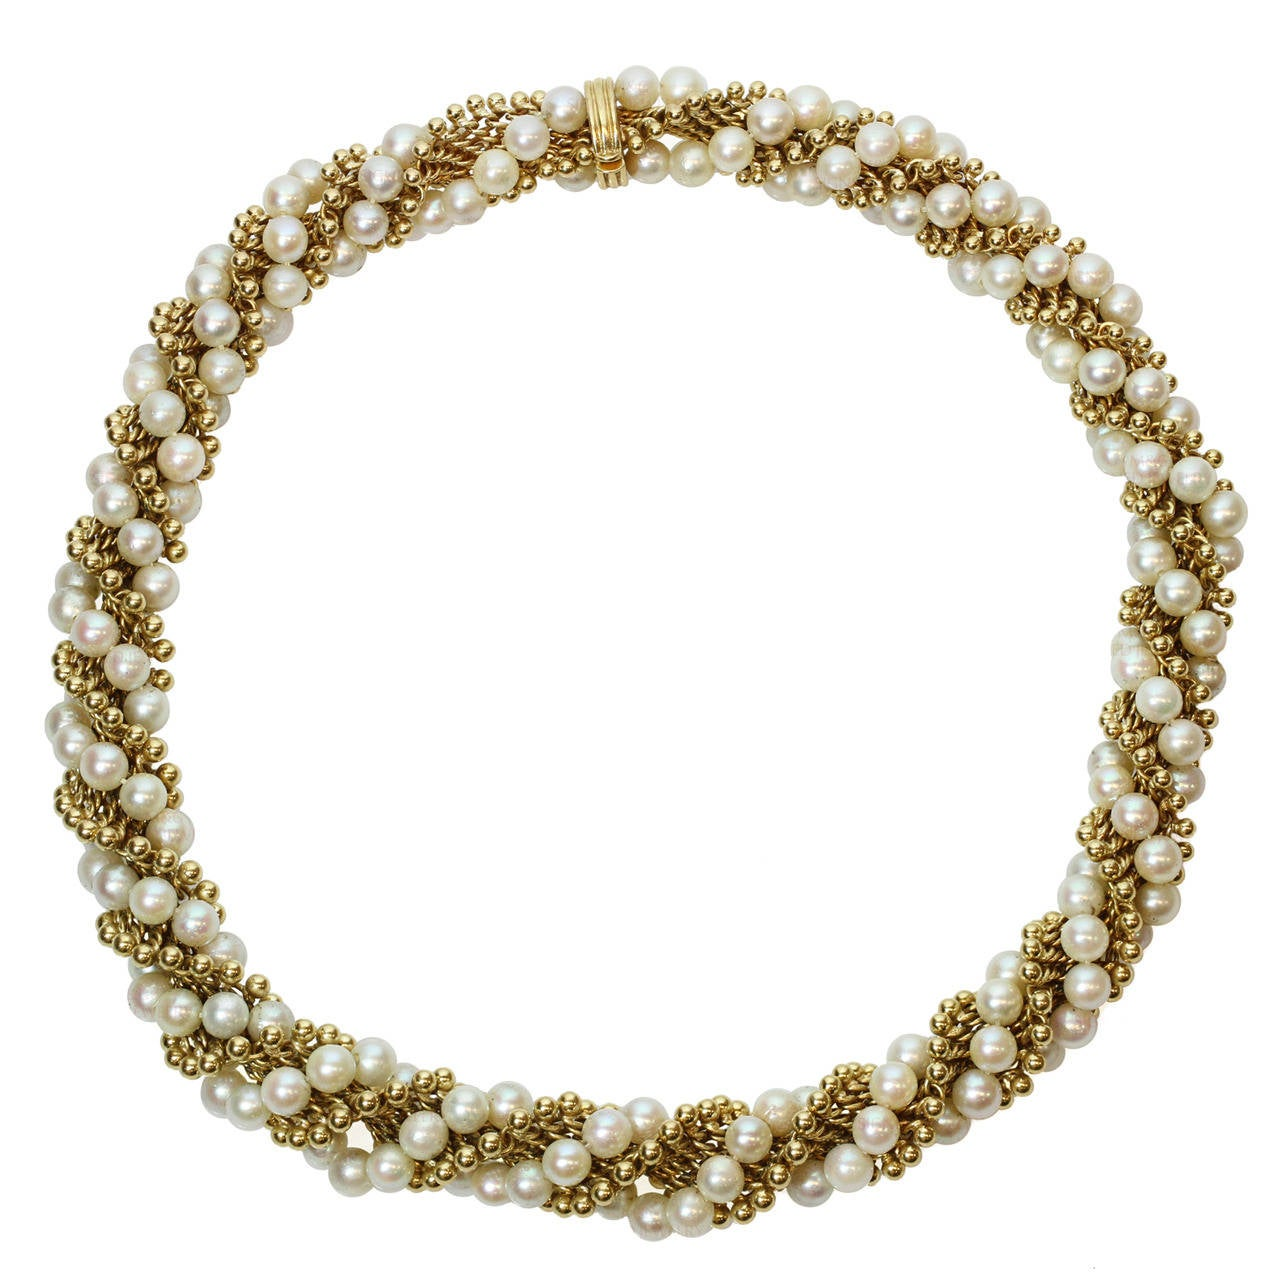 1960s VAN CLEEF & ARPELS Twist Cultured Pearl Yellow Gold Necklace